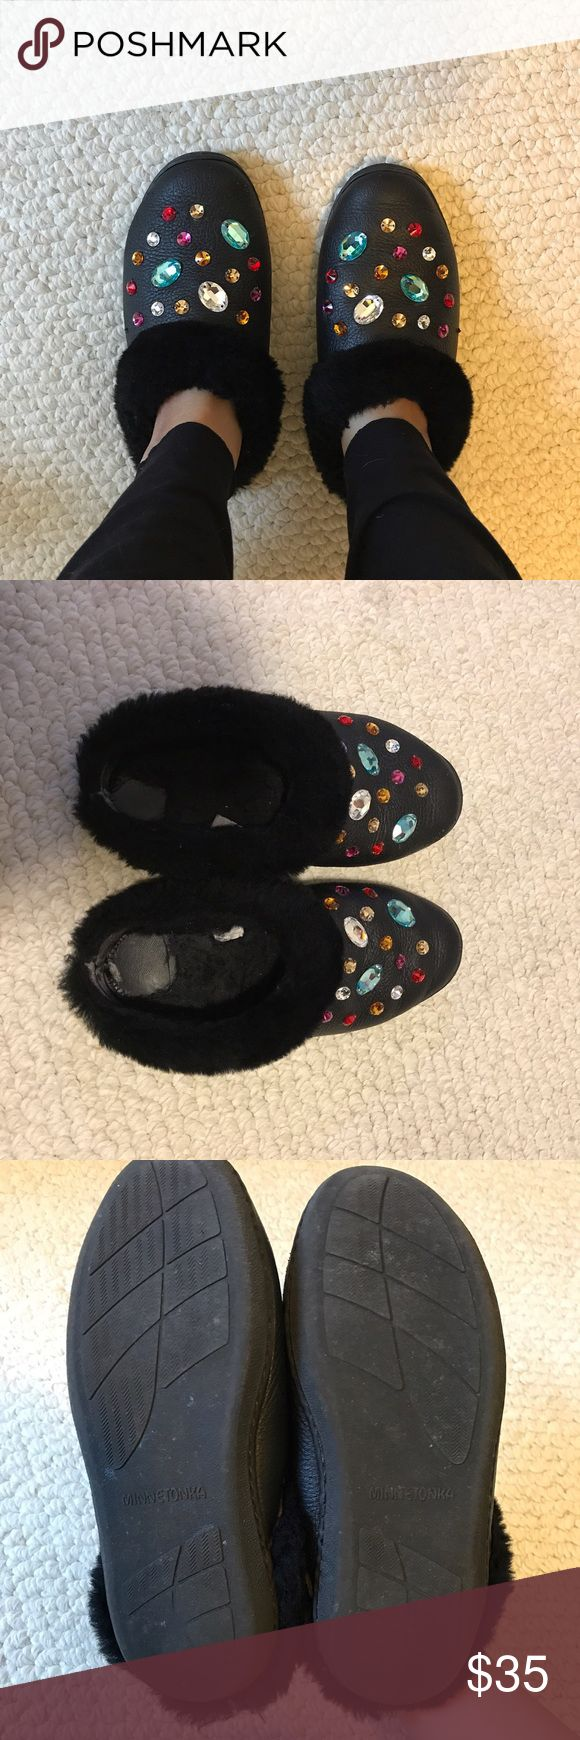 Opening Ceremony x Minnetonka crystal mules Opening Ceremony x Minnetonka sheepskin slippers / mules with Swarovski crystals. It says size 7 but I'm 7.5-8 and fits perfect. Lost some fur at insoles / light scuffing at exterior otherwise very comfy shoes. Opening Ceremony Shoes Mules & Clogs